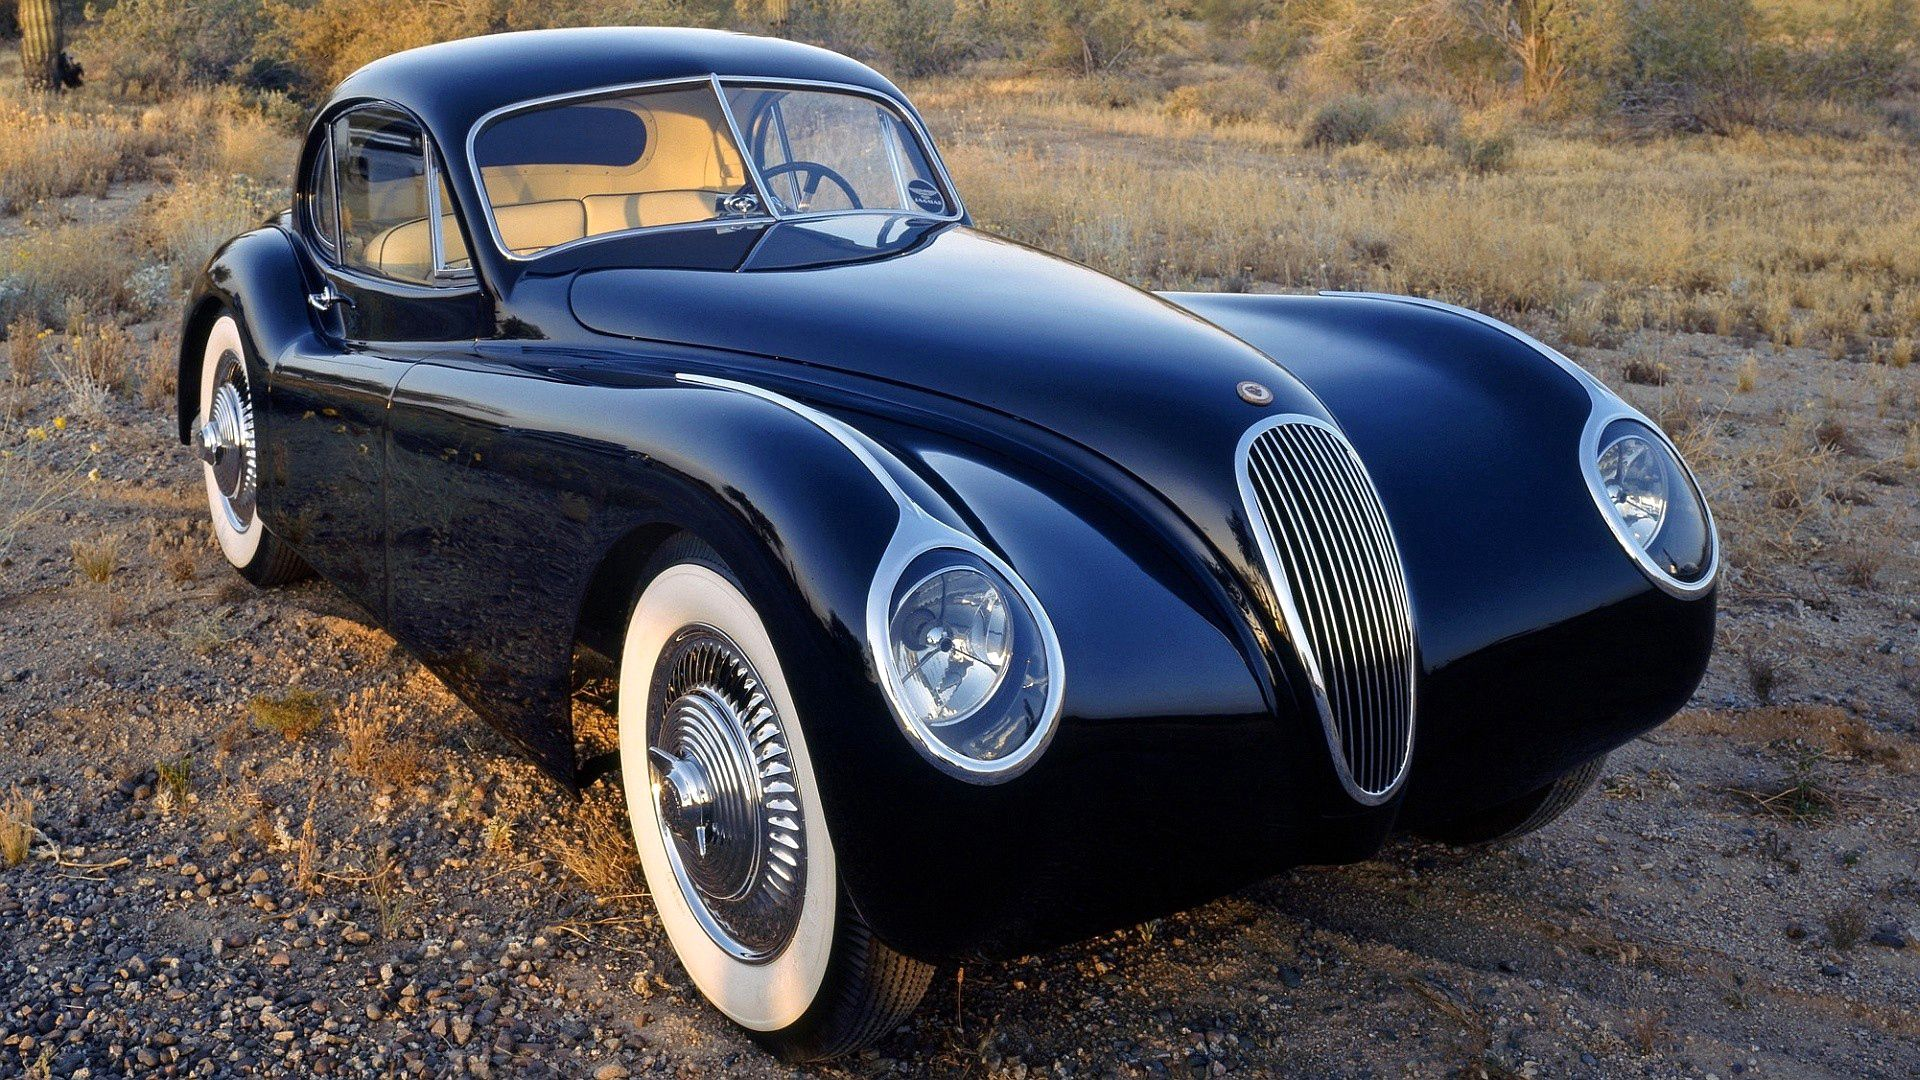 57360 download wallpaper Cars, Jaguar, Classic, Retro, Auto screensavers and pictures for free